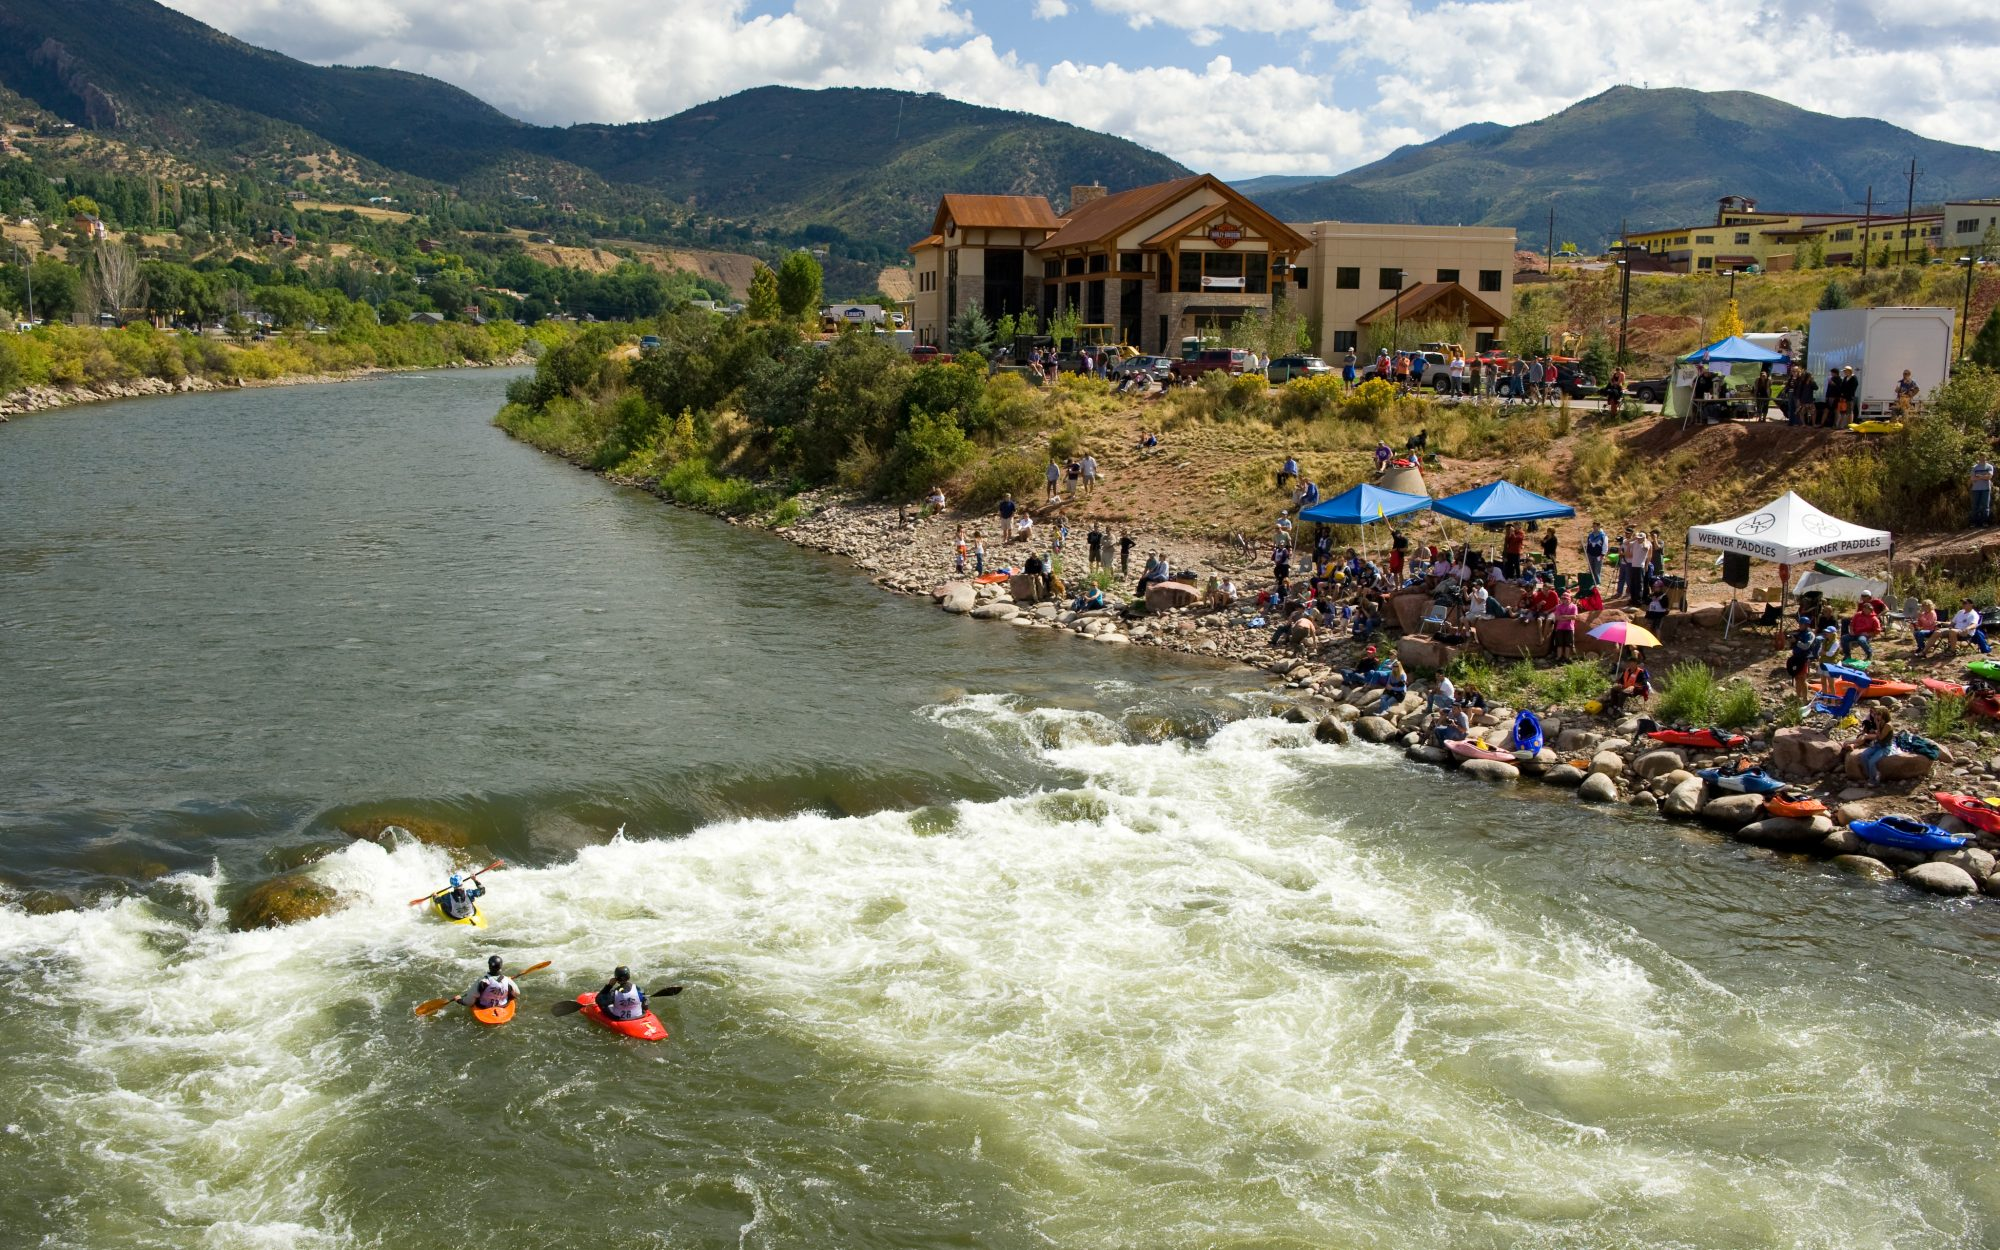 America's Favorite Towns: Glenwood Springs, CO